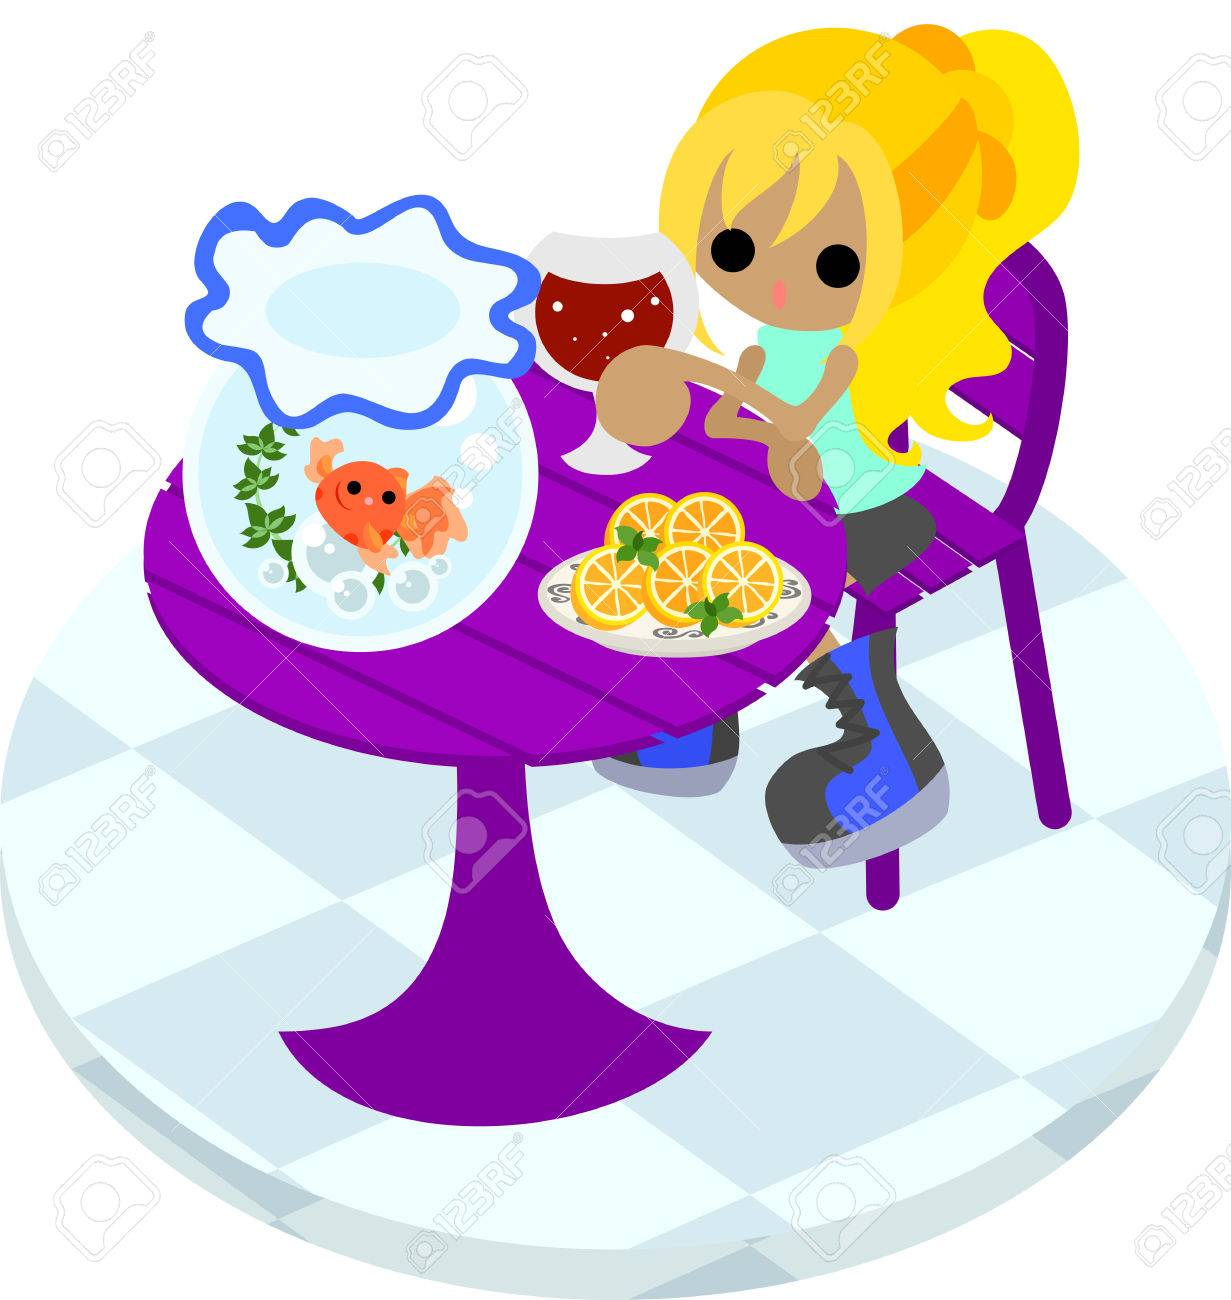 The woman who drinks juice while looking at a goldfish basin at a purple table Stock Vector - 28909133